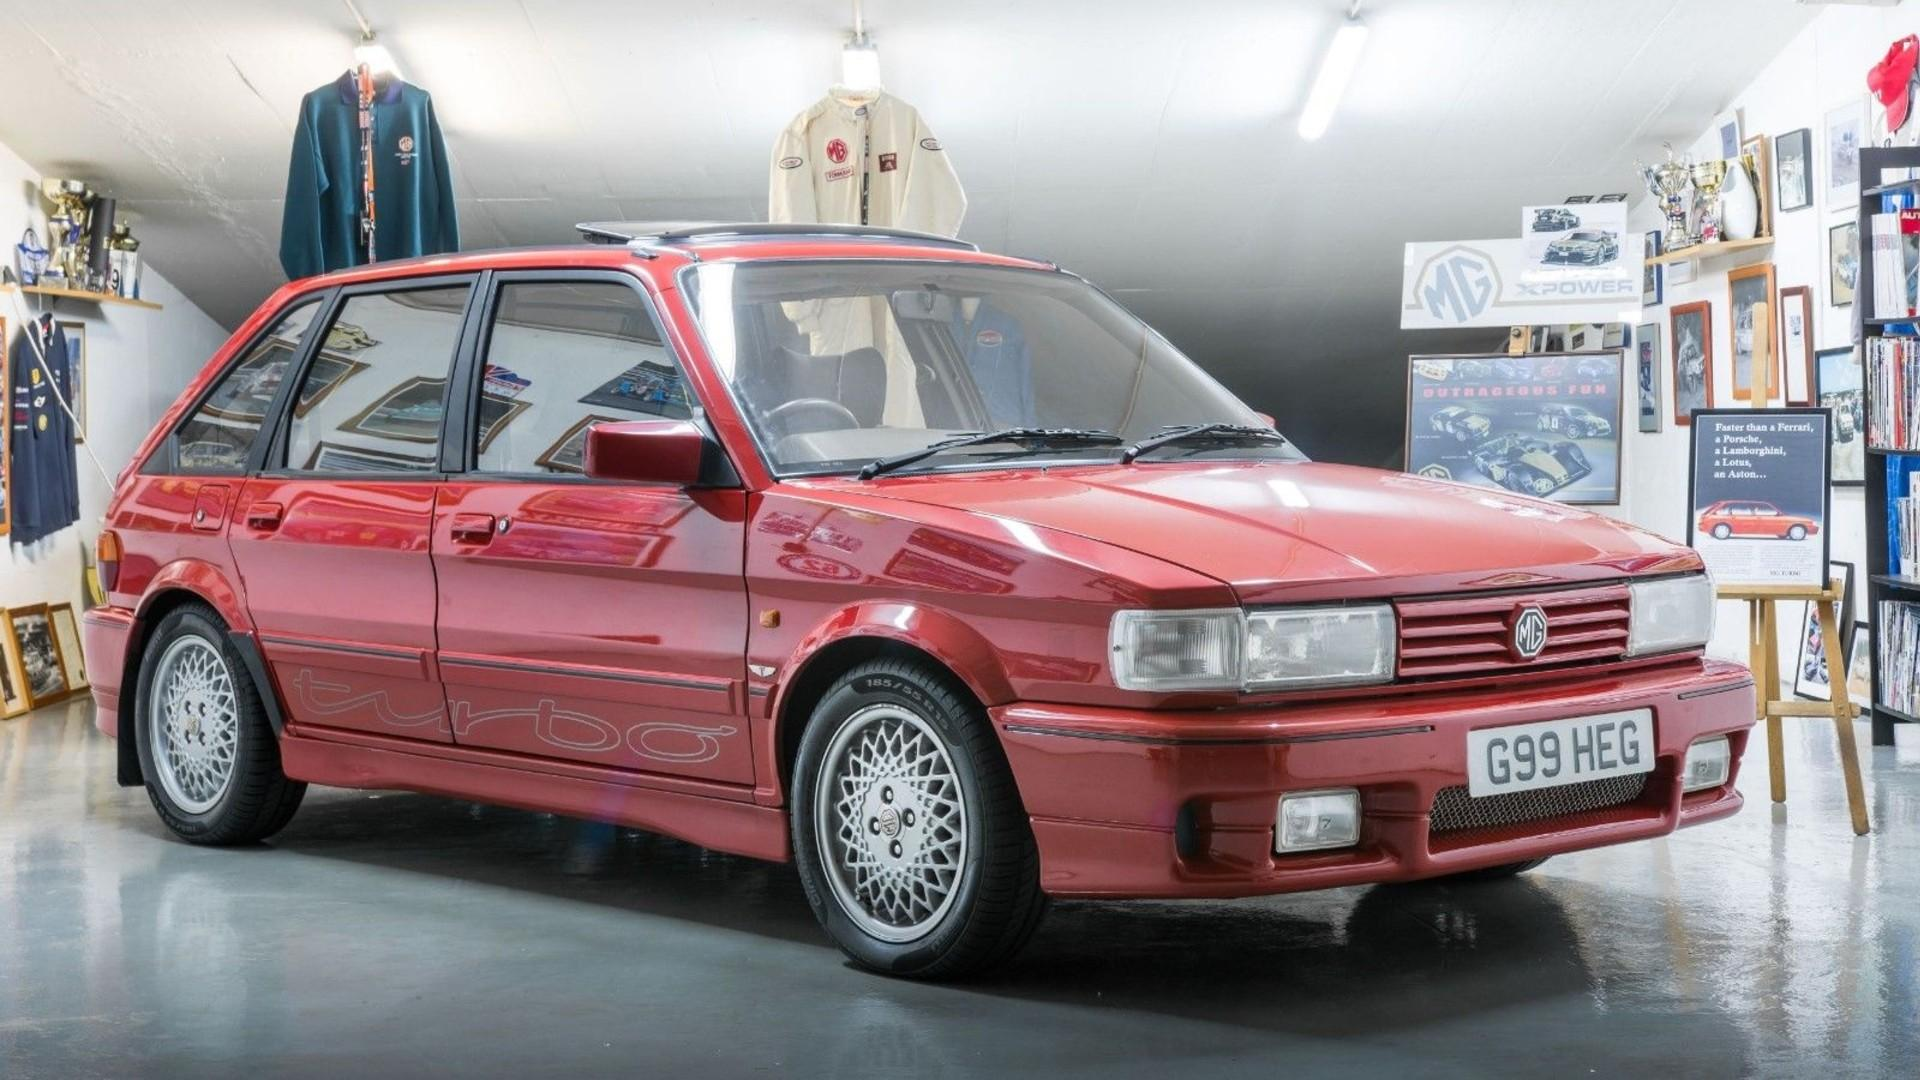 Stunning rare Tickford-tuned MG Maestro Turbo up for grabs